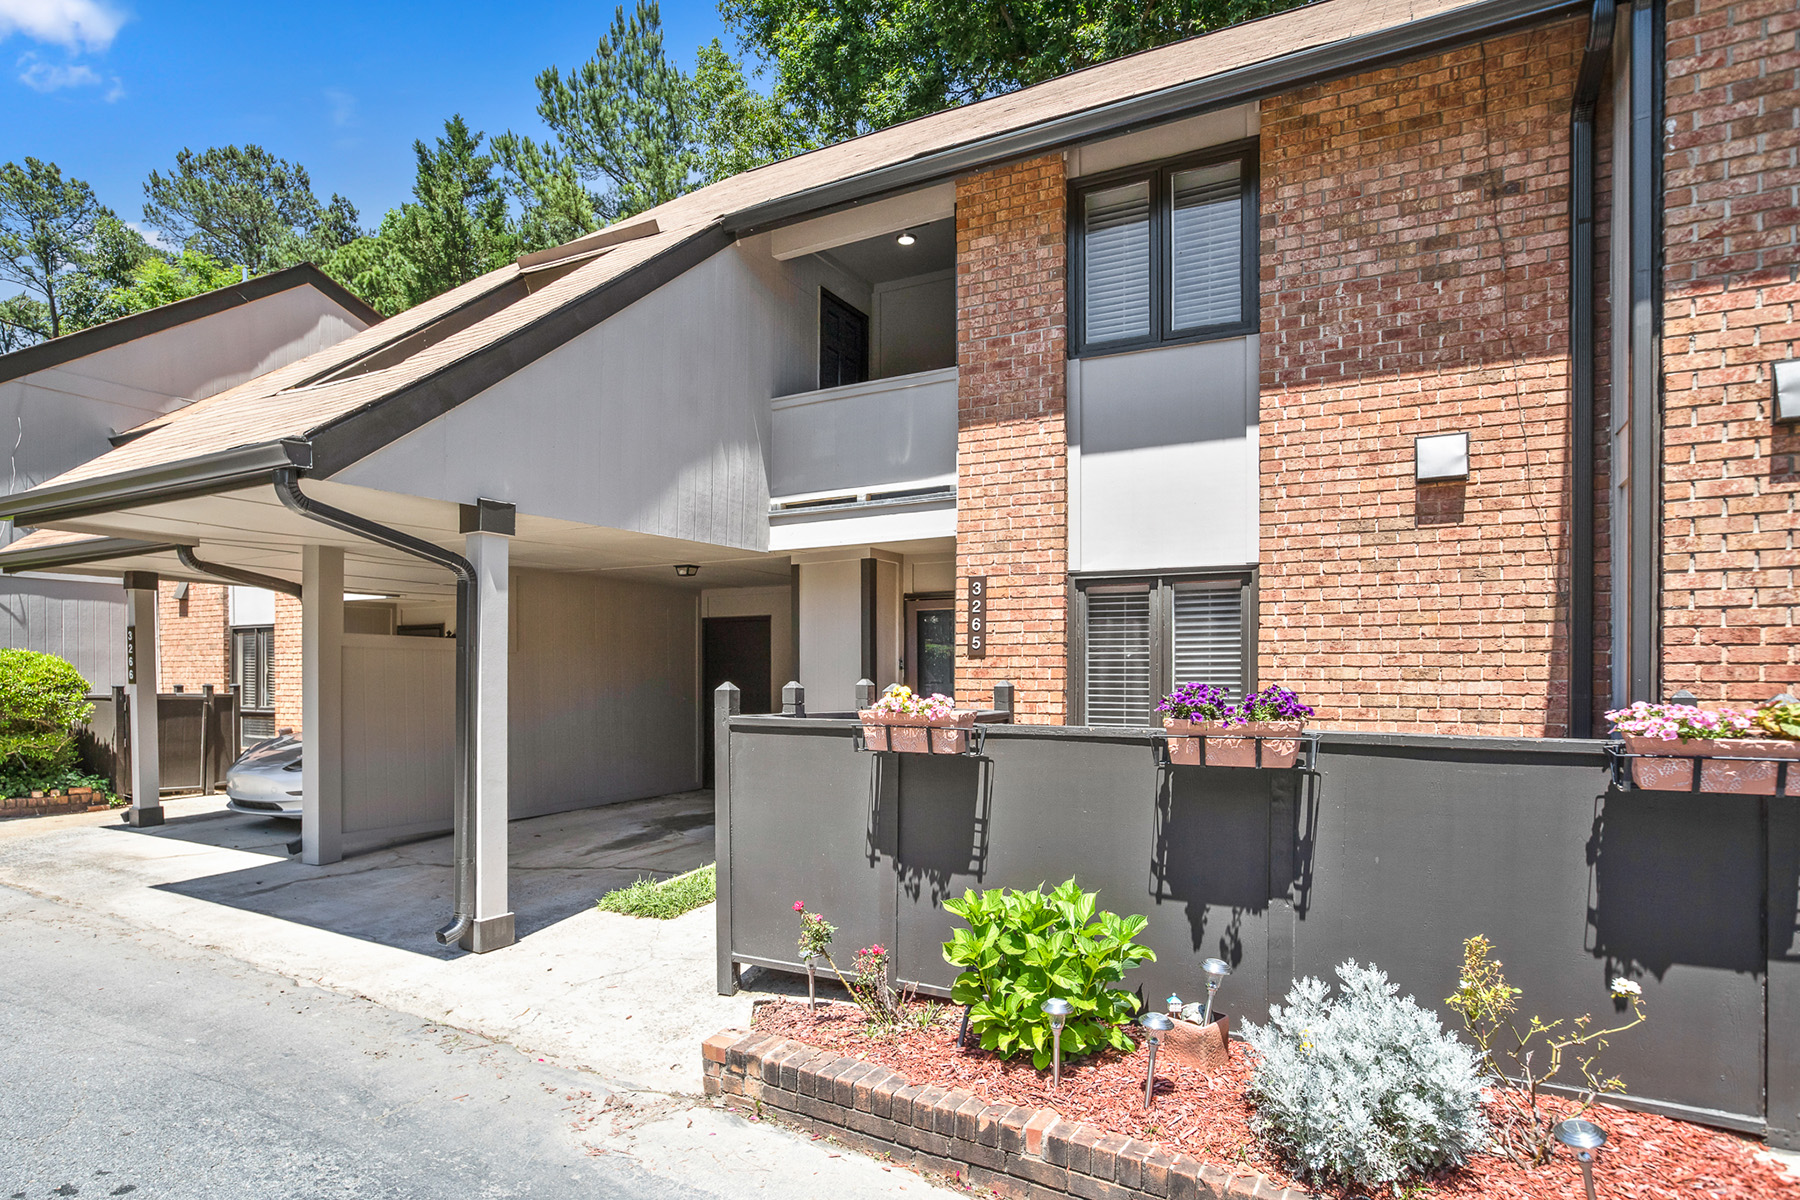 townhouses 为 销售 在 Updated Brookhaven Townhome 3265 Clairmont North NE Brookhaven, 乔治亚州 30329 美国